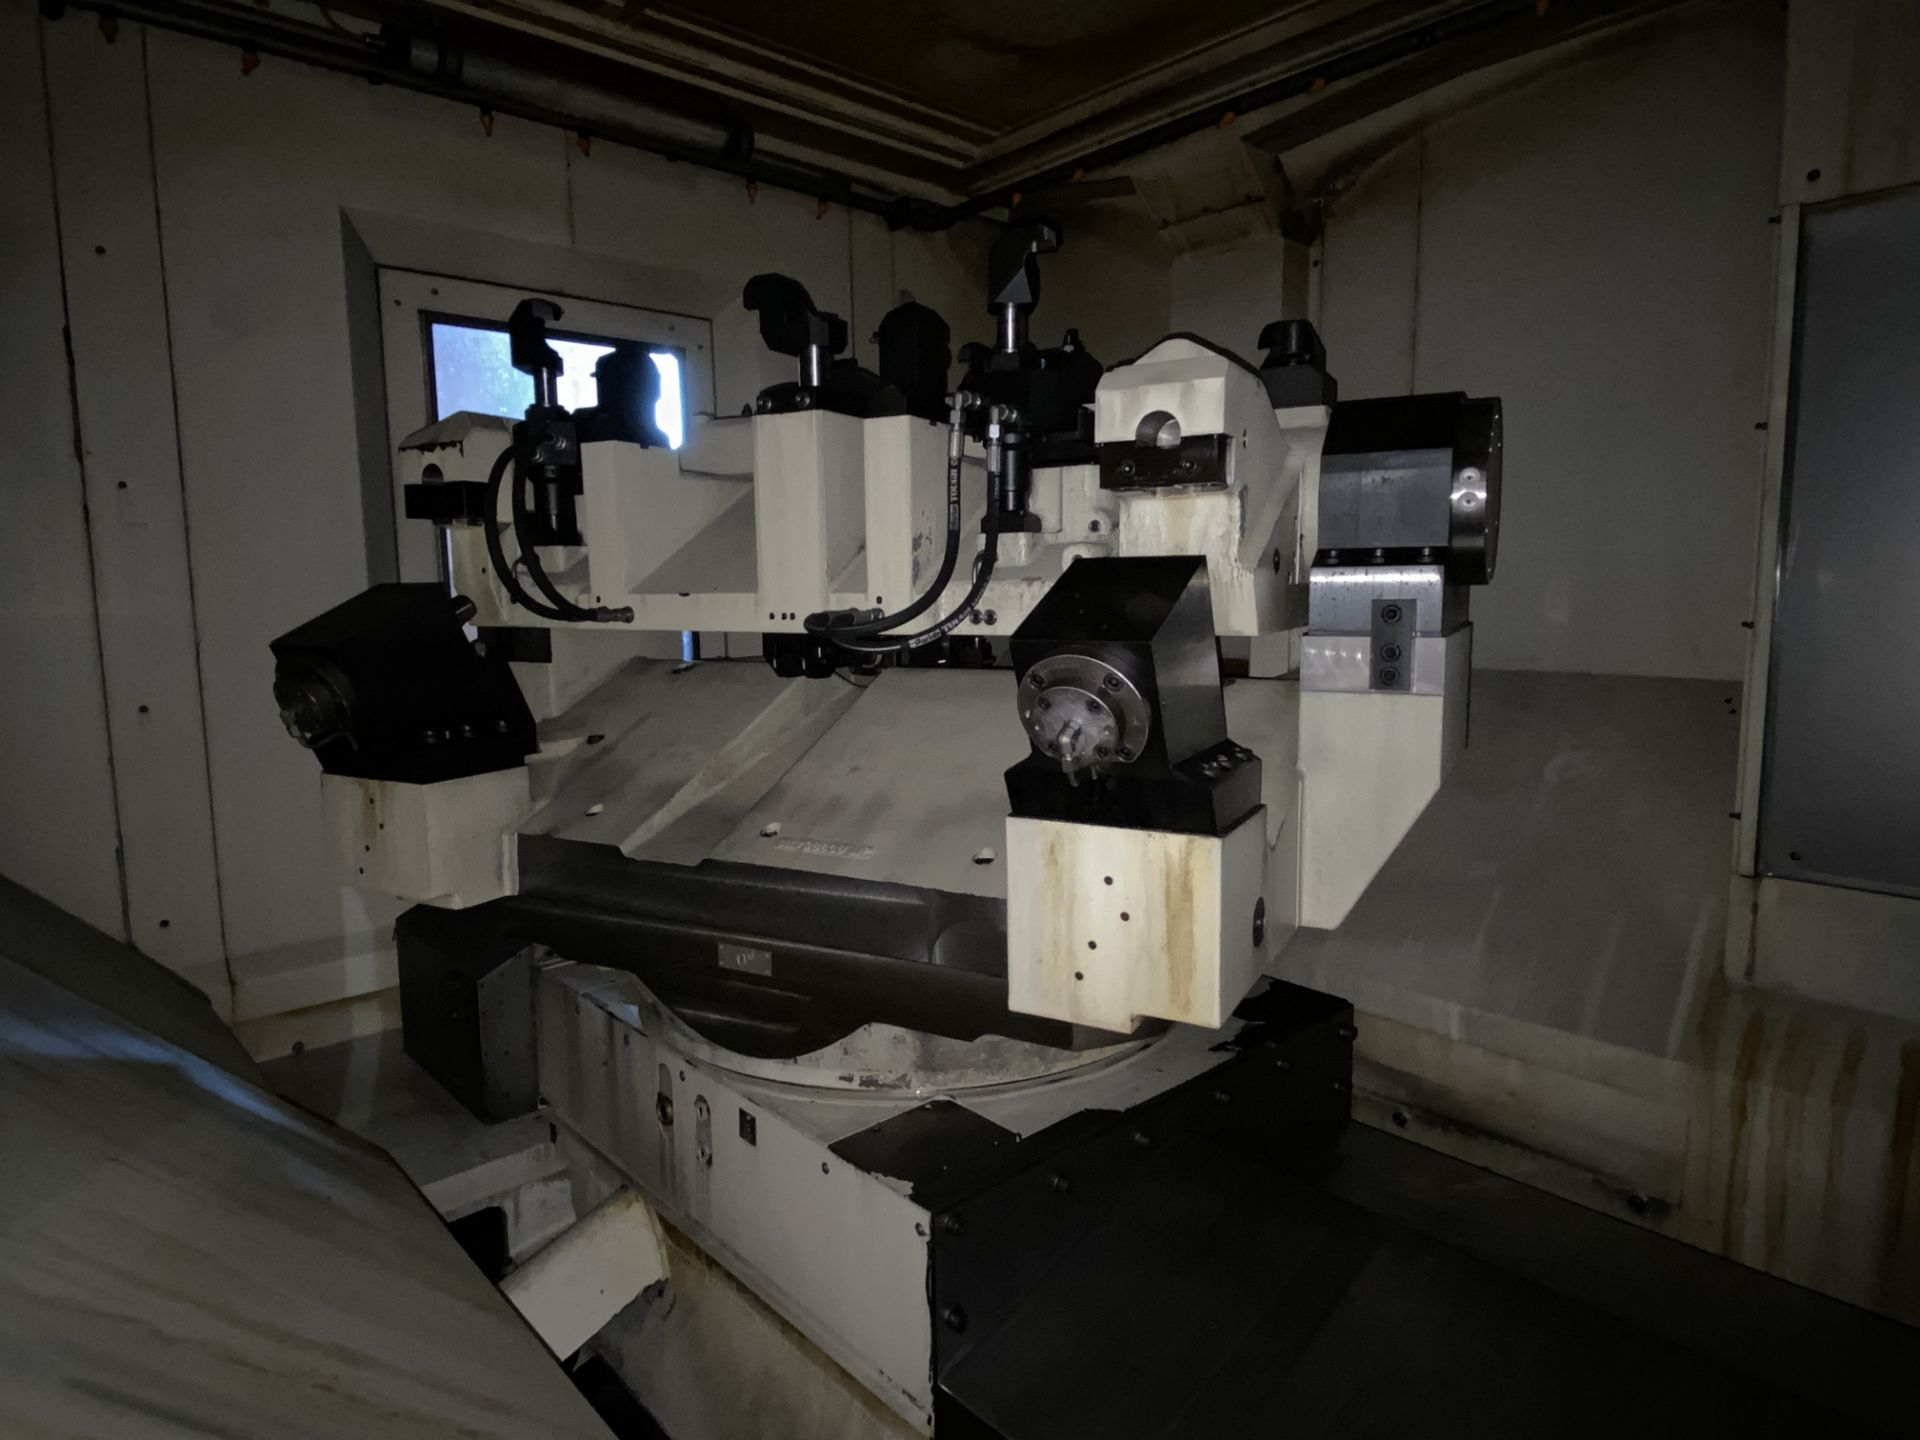 Lot 16 - 2011 Heller MCH 400D, Horizontal Machining Center